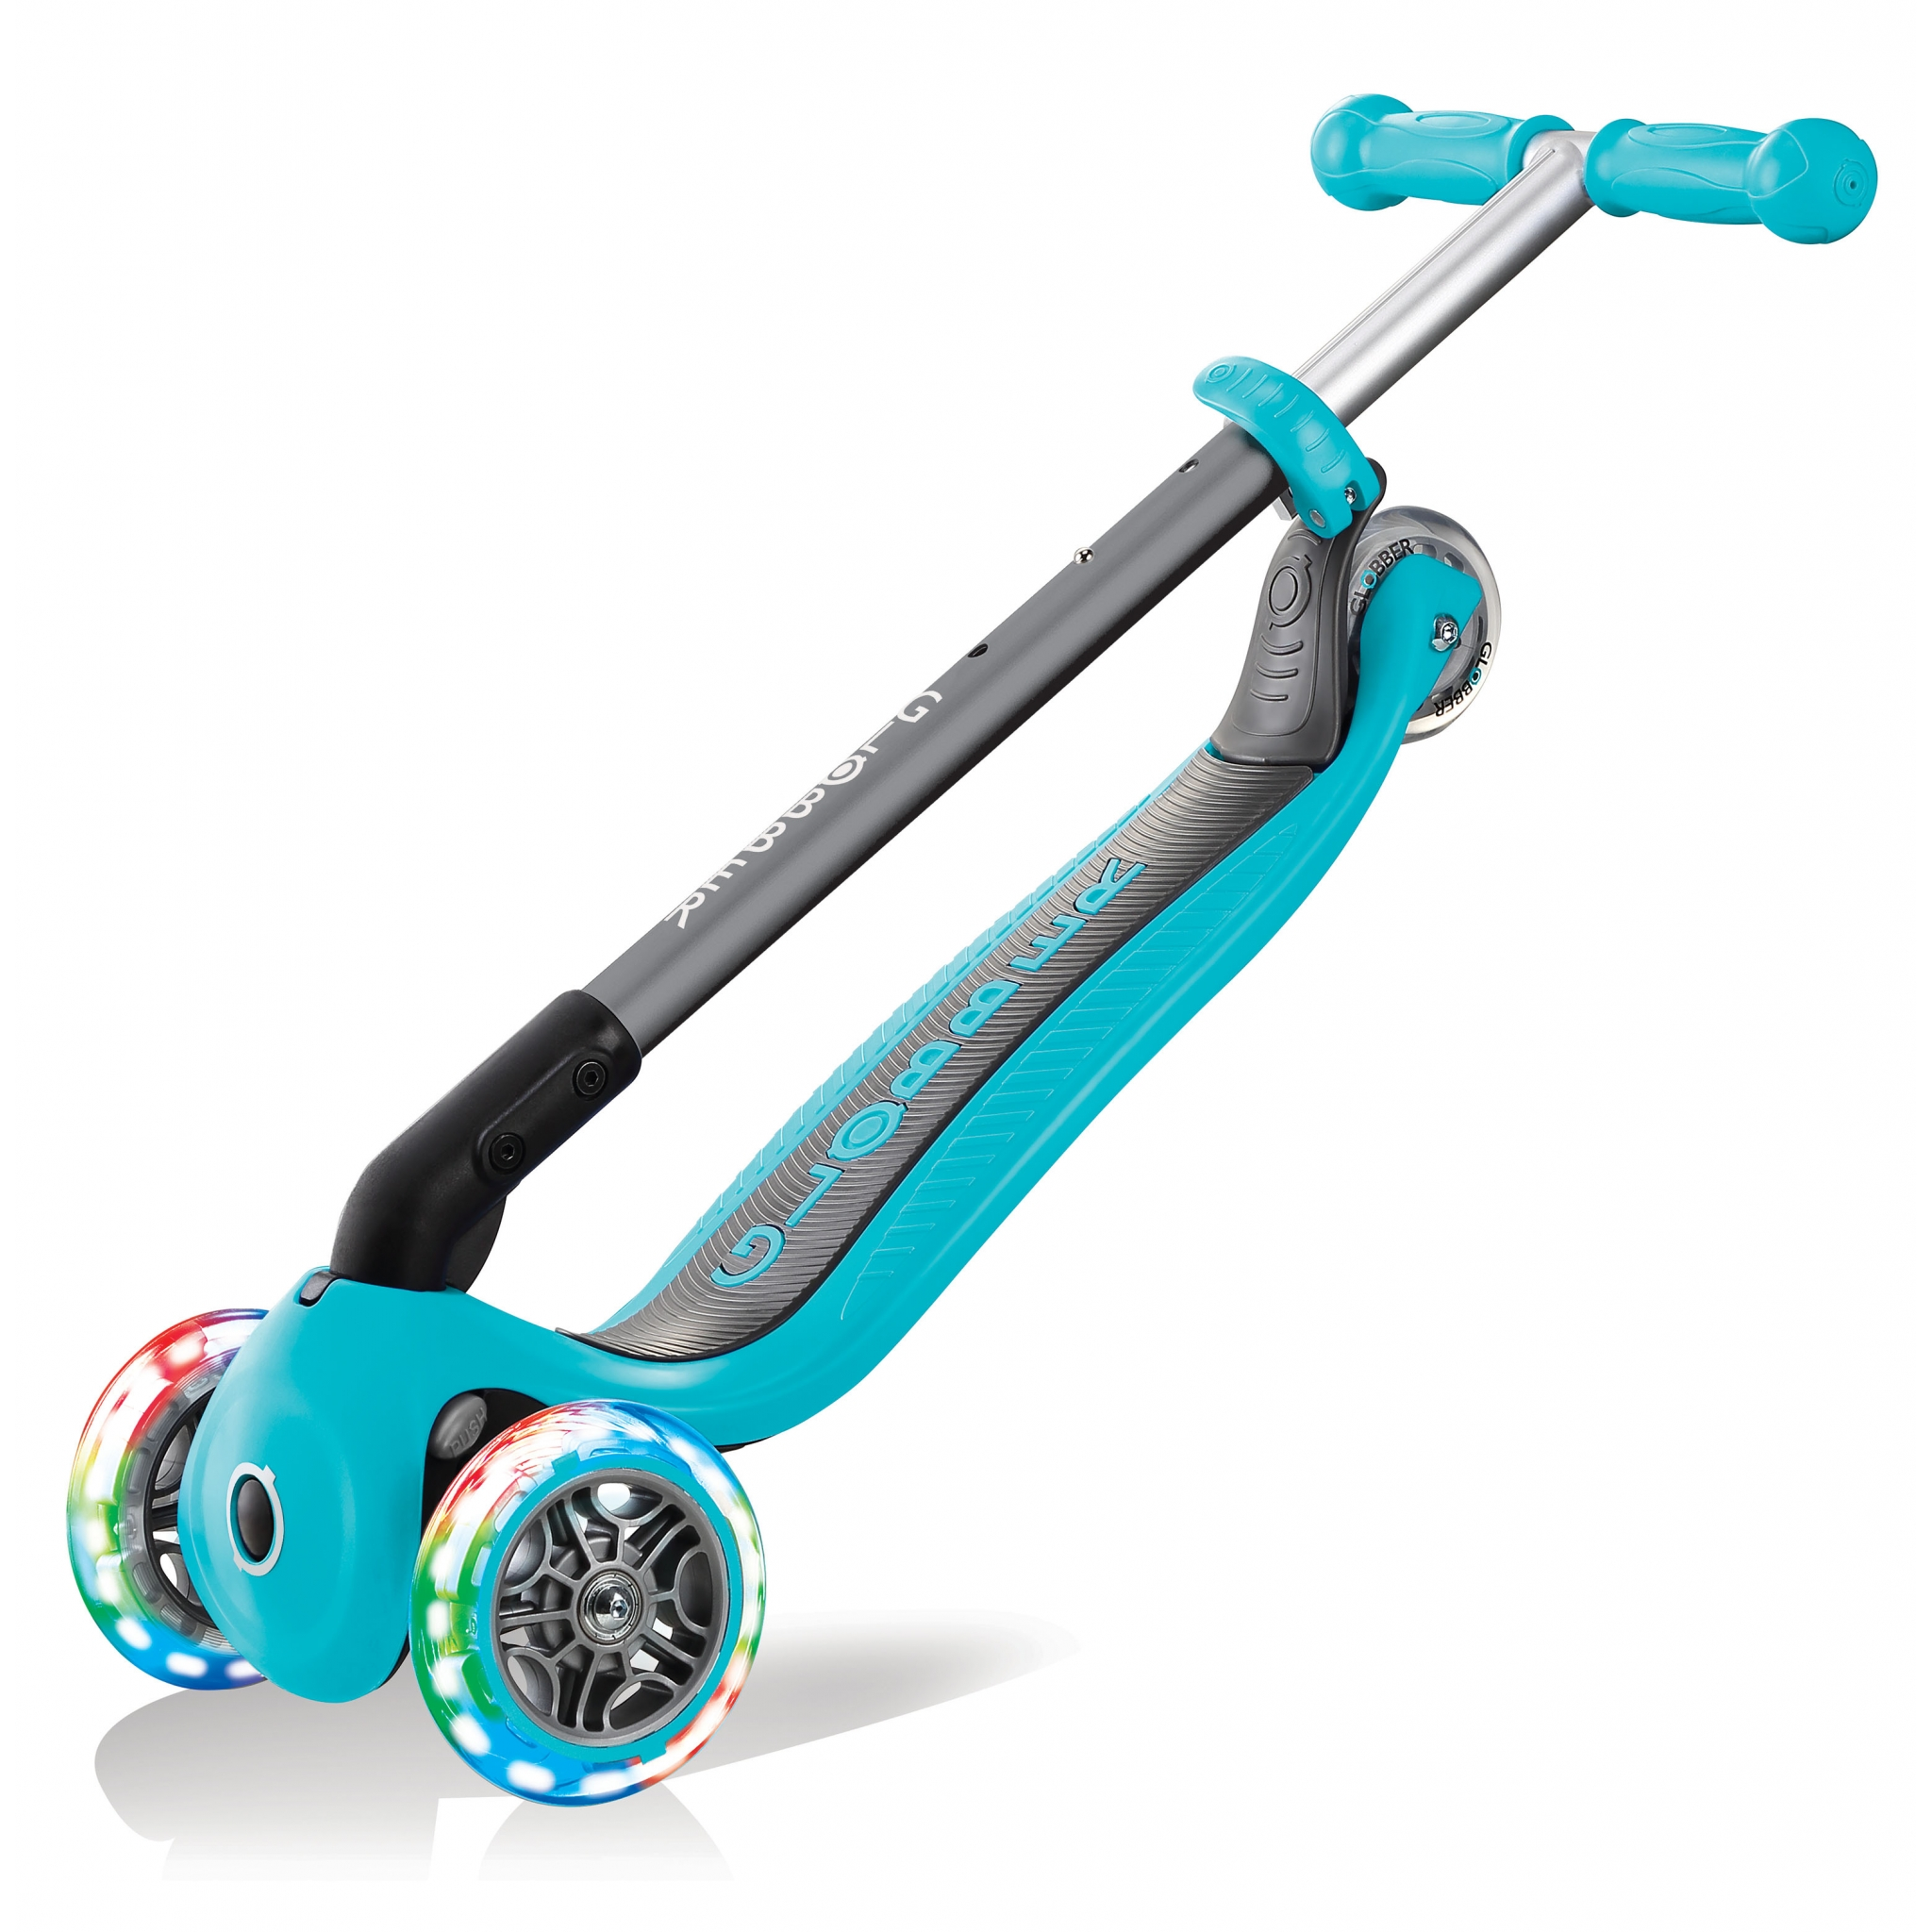 PRIMO-FOLDABLE-LIGHTS-3-wheel-foldable-scooter-for-kids-trolley-mode-teal 2